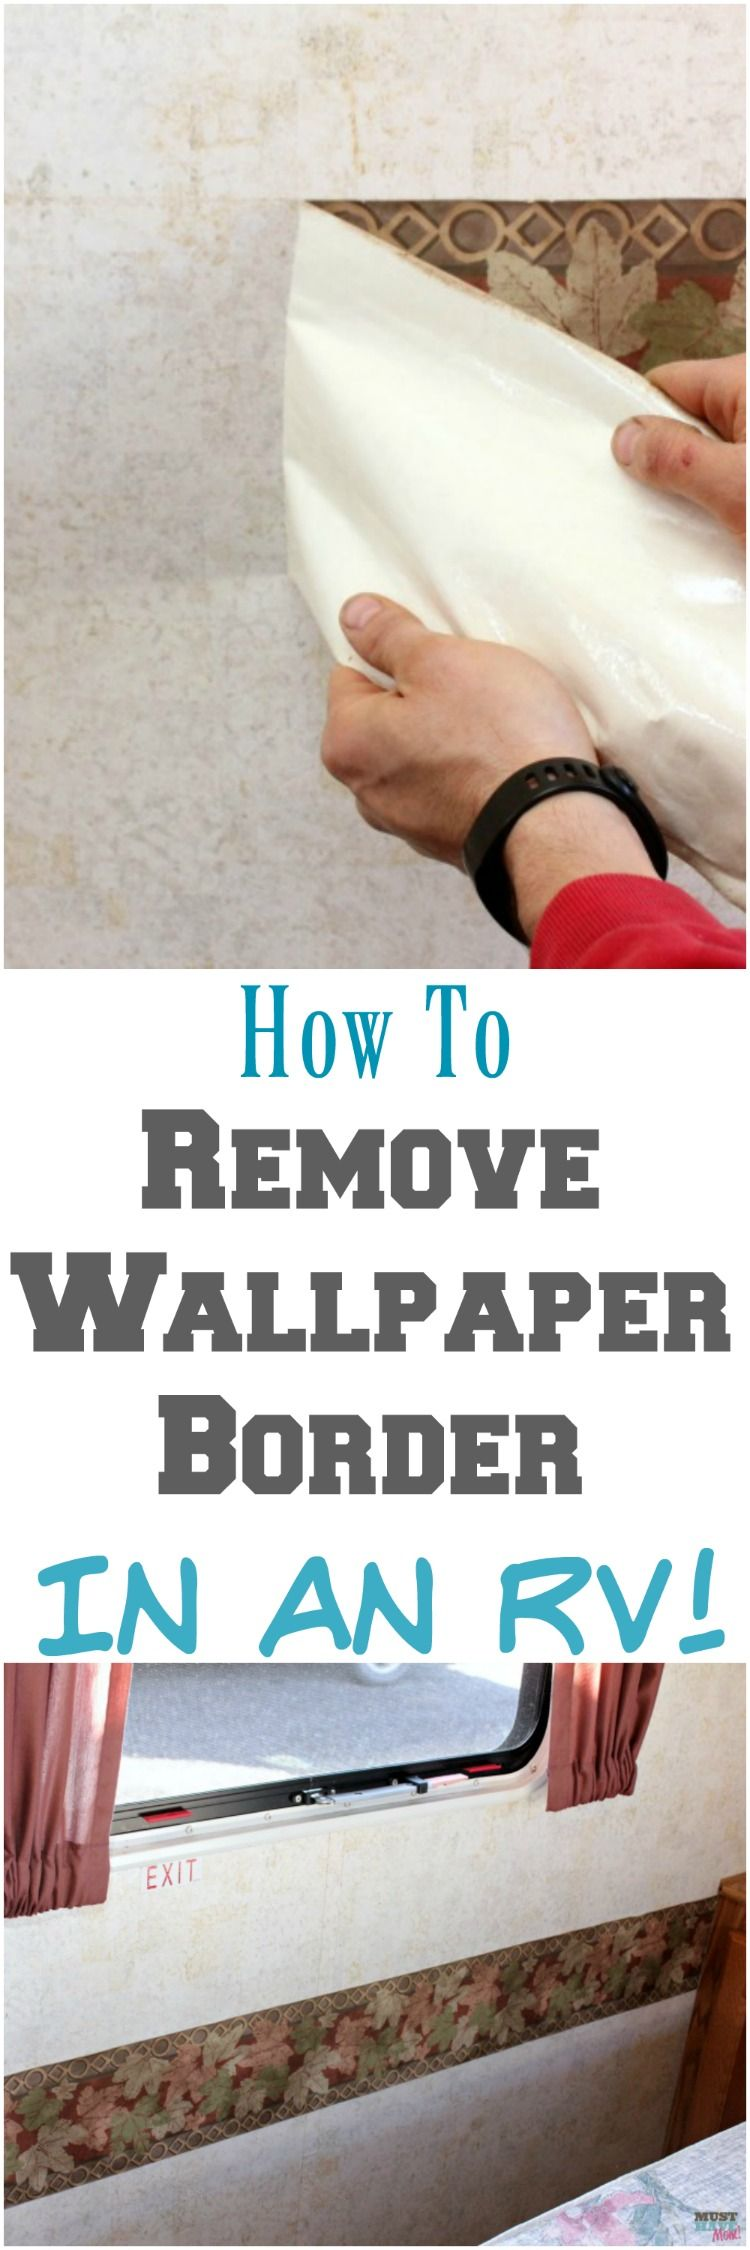 How To Remove The Outdated Wallpaper Border In Your Rv Camper Tips To Easily Do An Rv Makeover Remodeled Campers Camper Makeover Rv Makeover